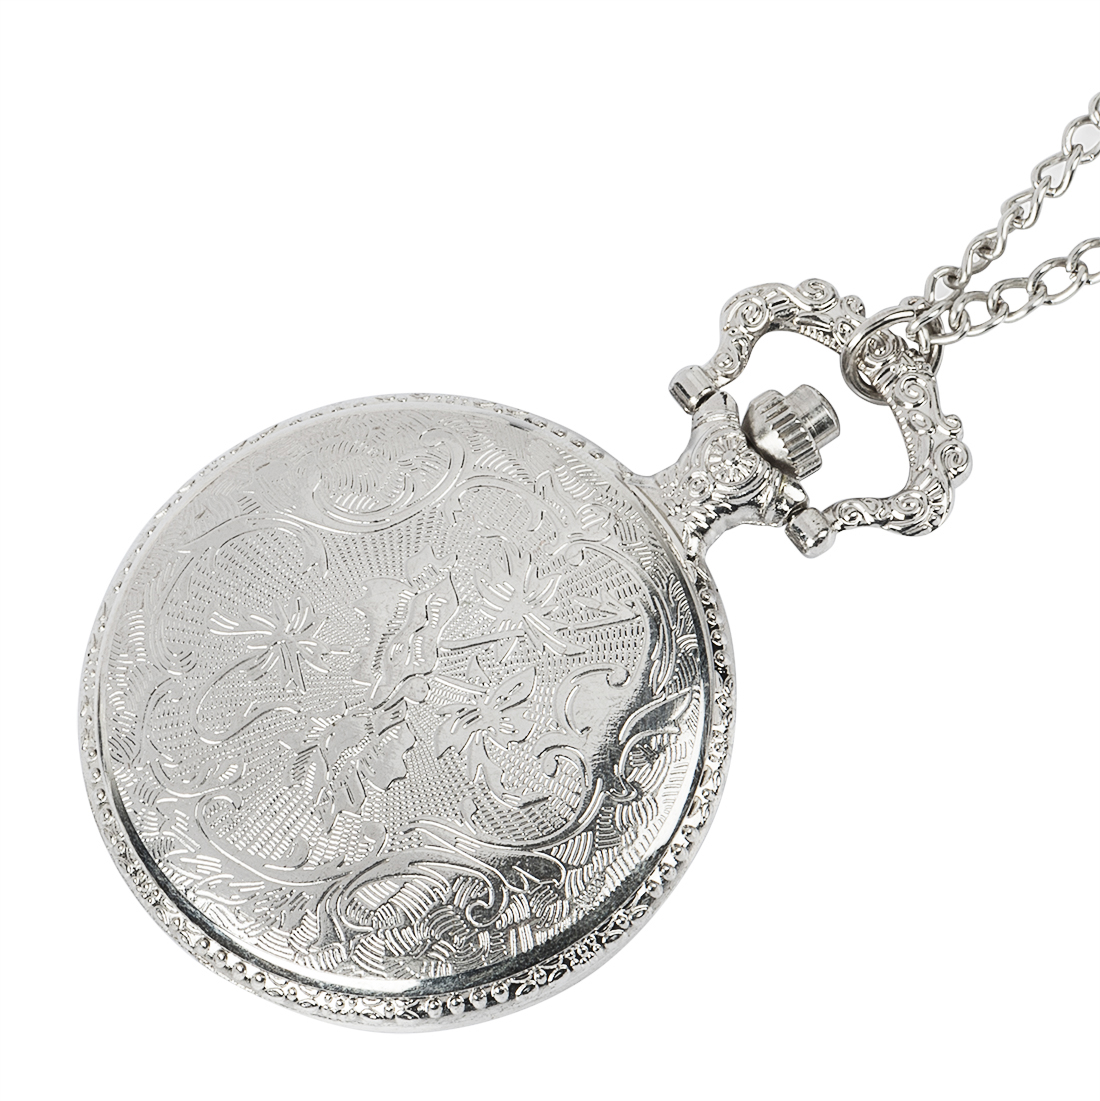 New men 39 s and women 39 s watches fashion neutral hollow silver Roman digital copper chain necklace pocket watch in Pocket amp Fob Watches from Watches